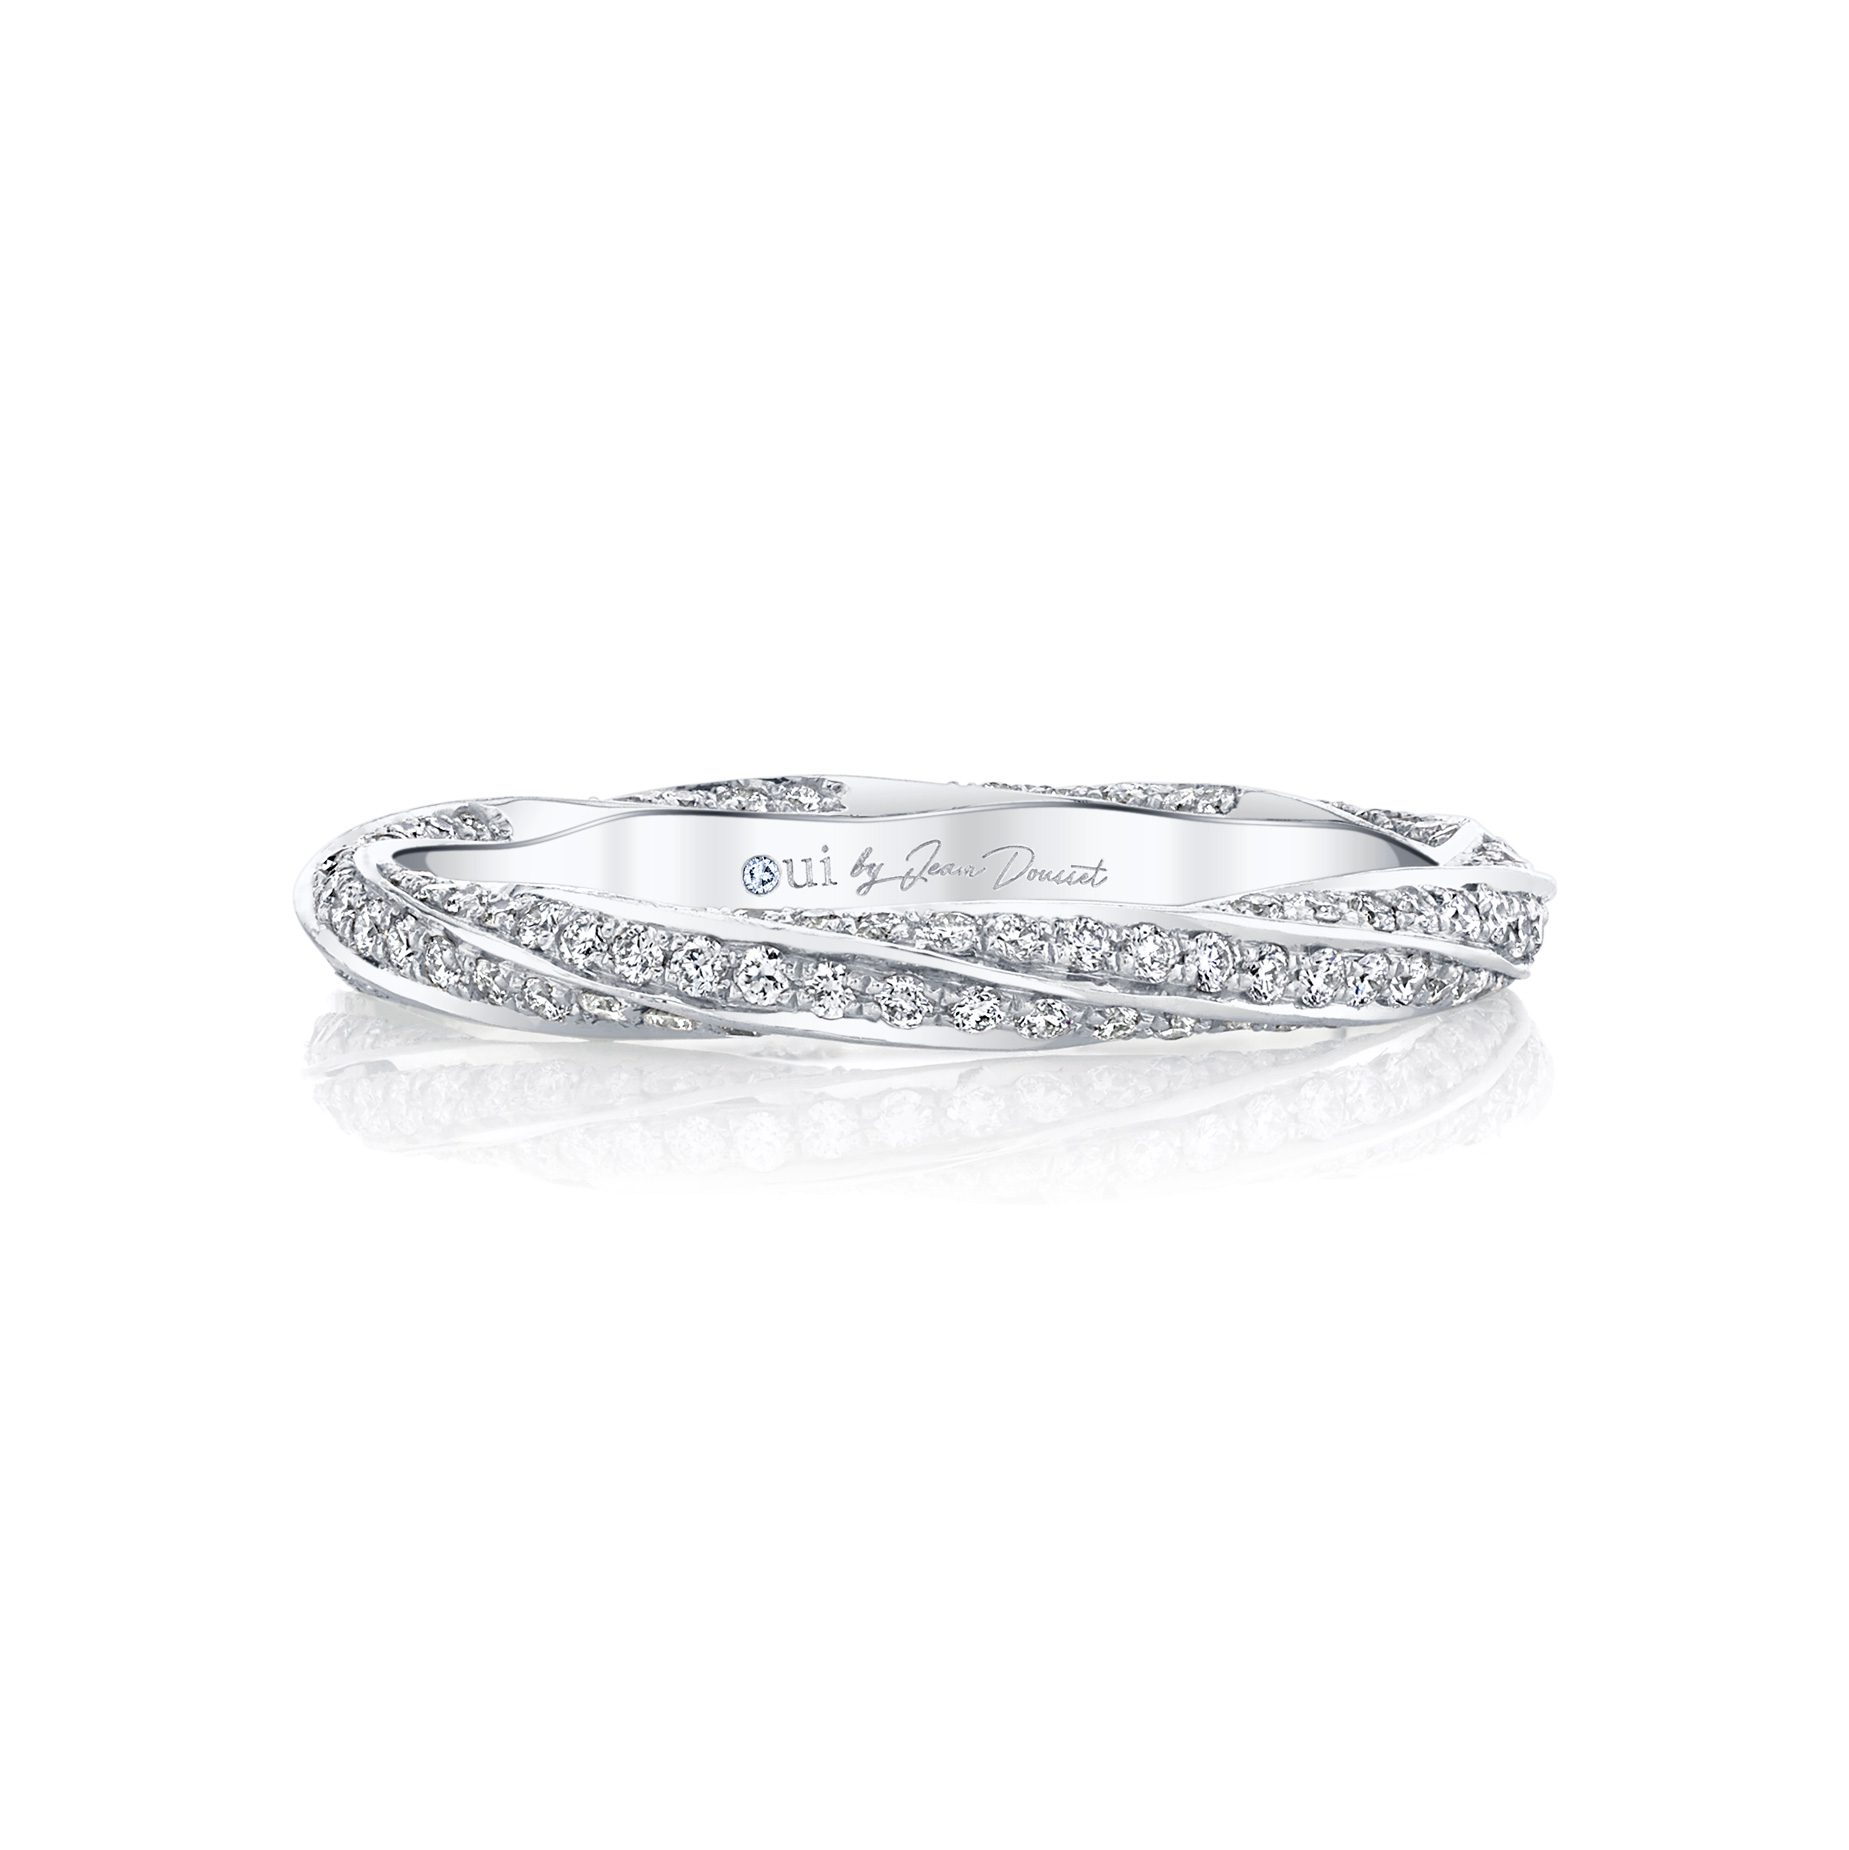 Camille Women's Wedding Band with a diamond pavé twist in 18k White Gold Front View by Oui by Jean Dousset